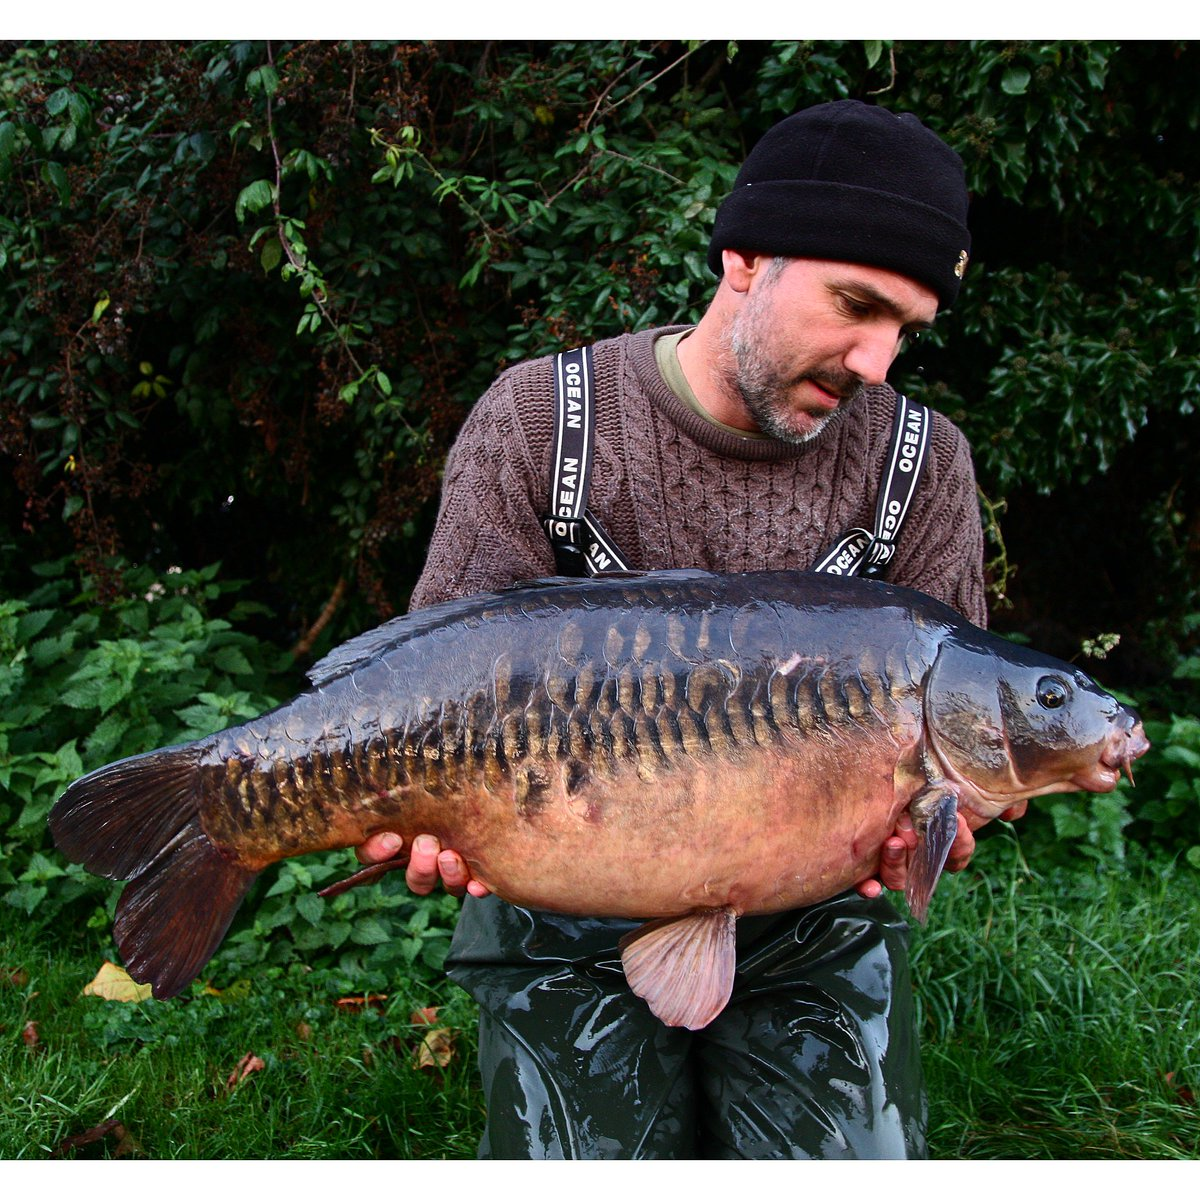 #rivercarp #carpfishing @CotswoldAqua  @GardnerTackle   Ouse scaly from a few moons ago.... https://